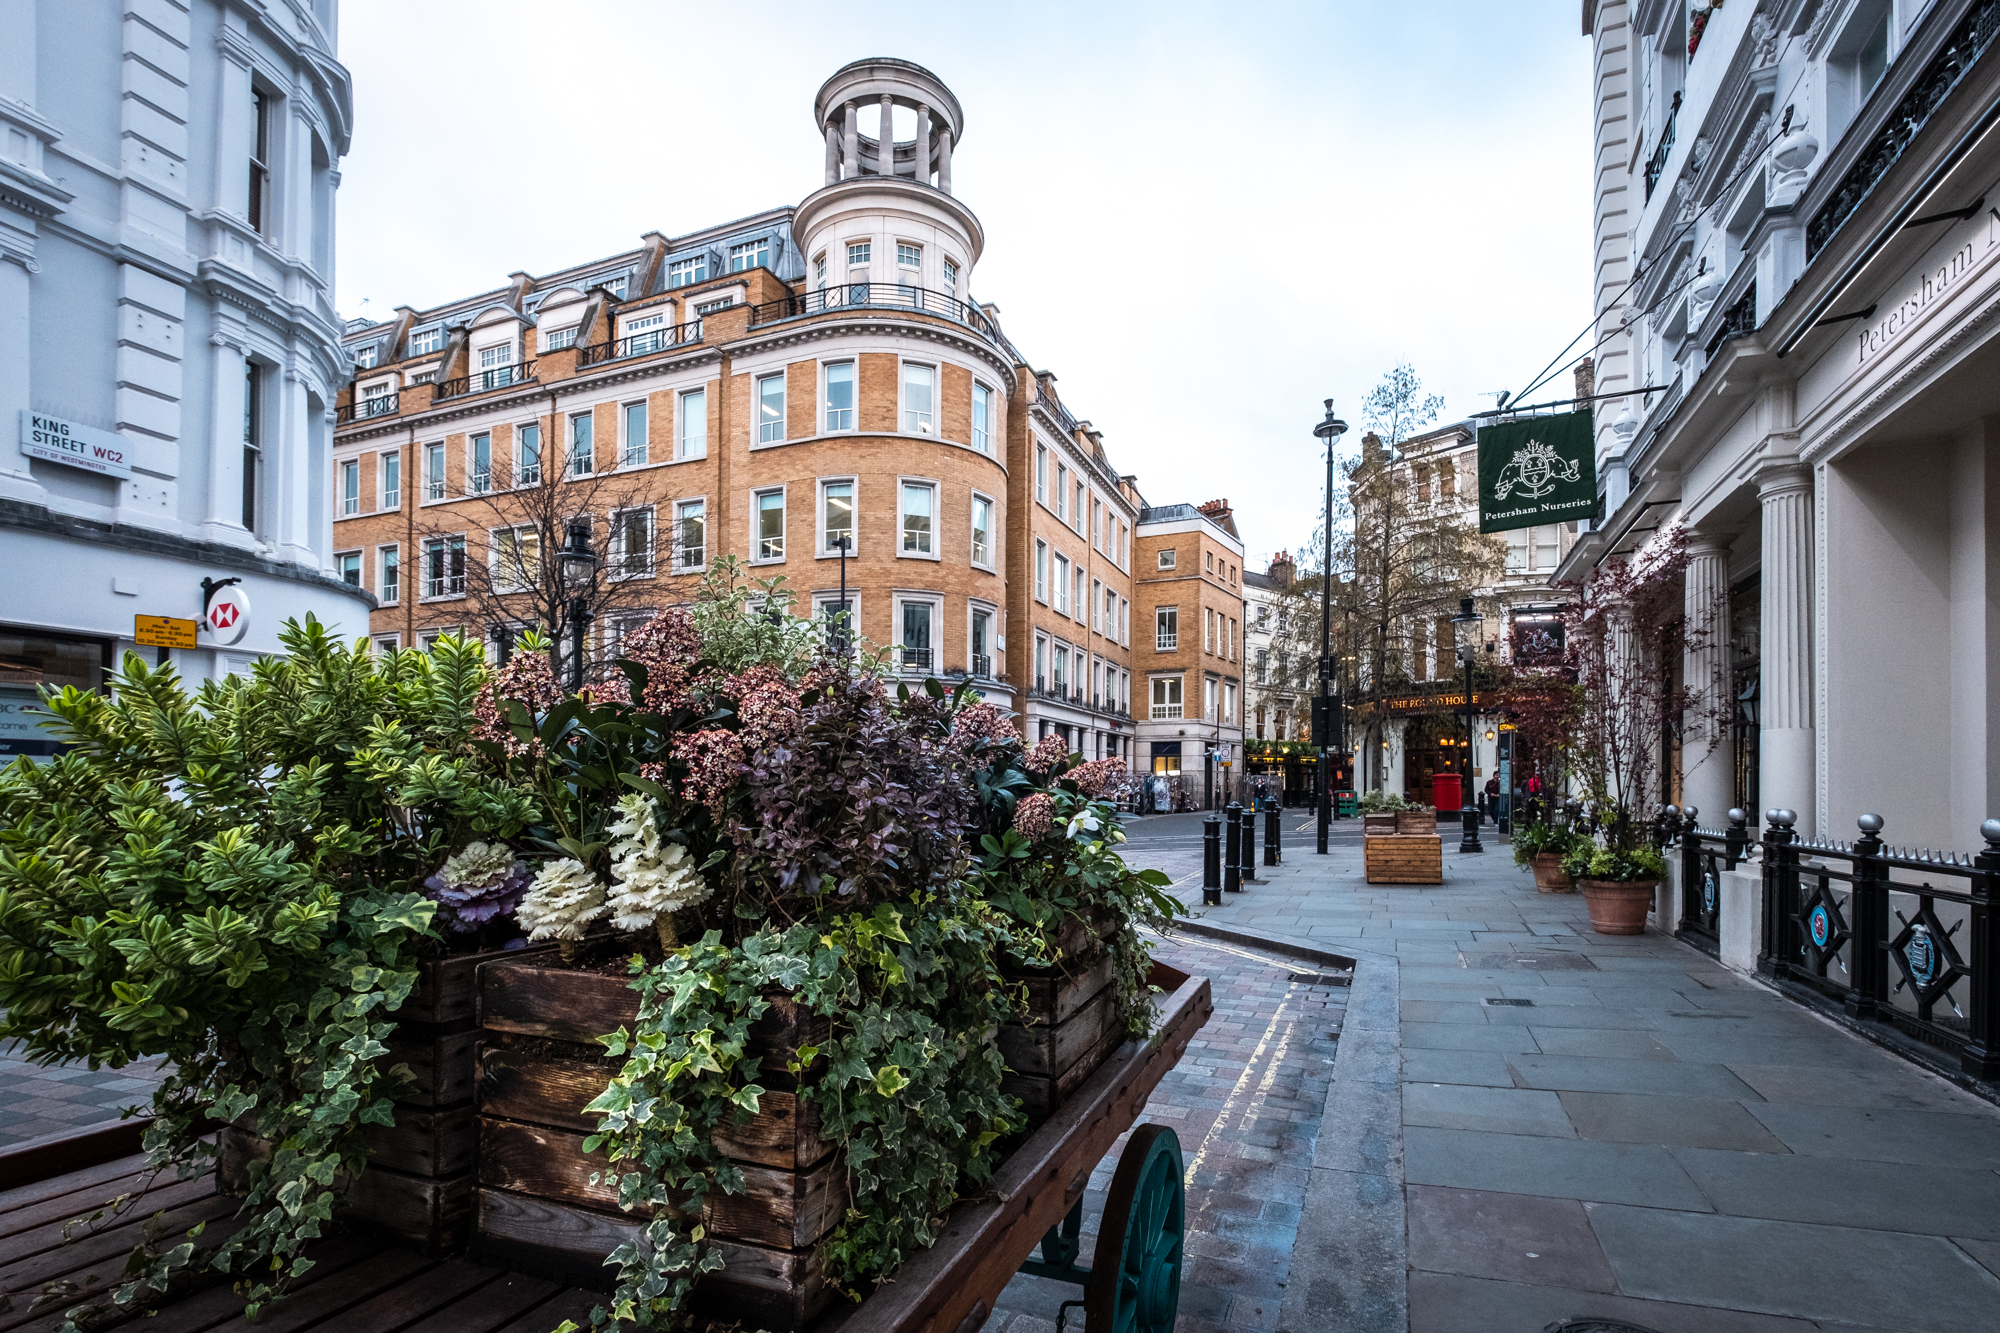 A photo of Covent Garden, London taken by Trevor Sherwin